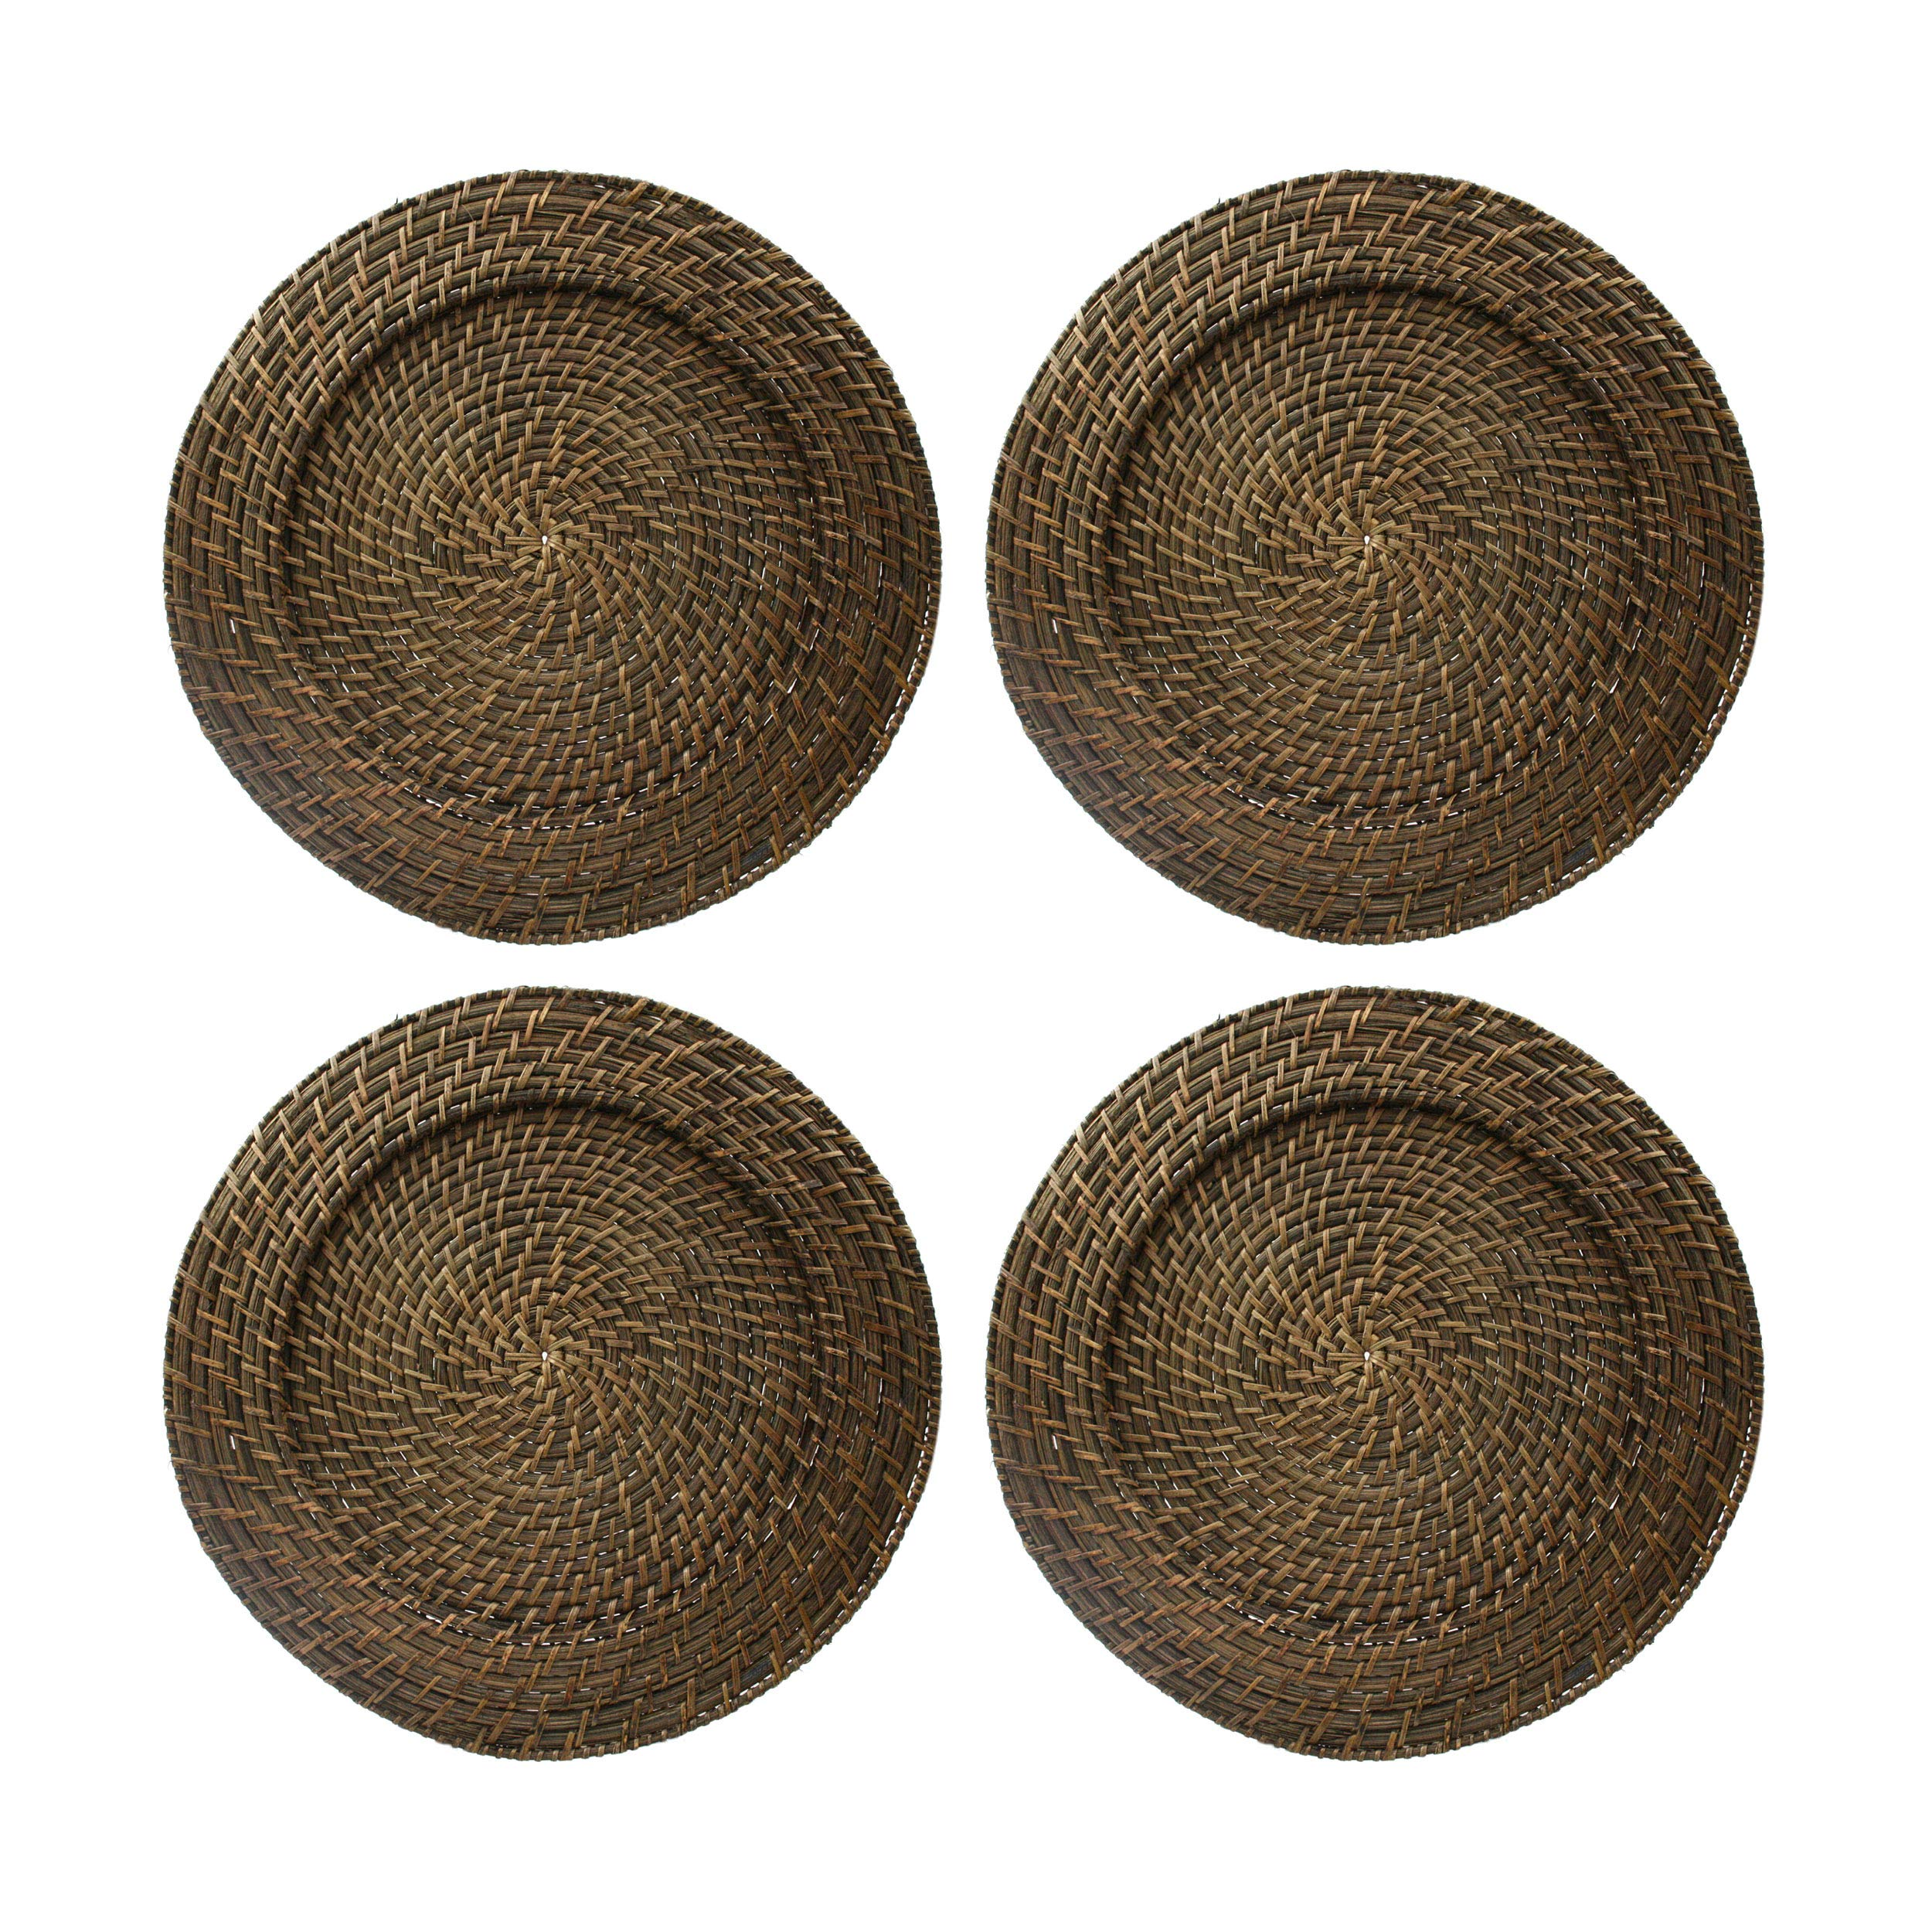 Round Rattan Brick Brown 13-Inch Charger, Set of 4 by Jay Import